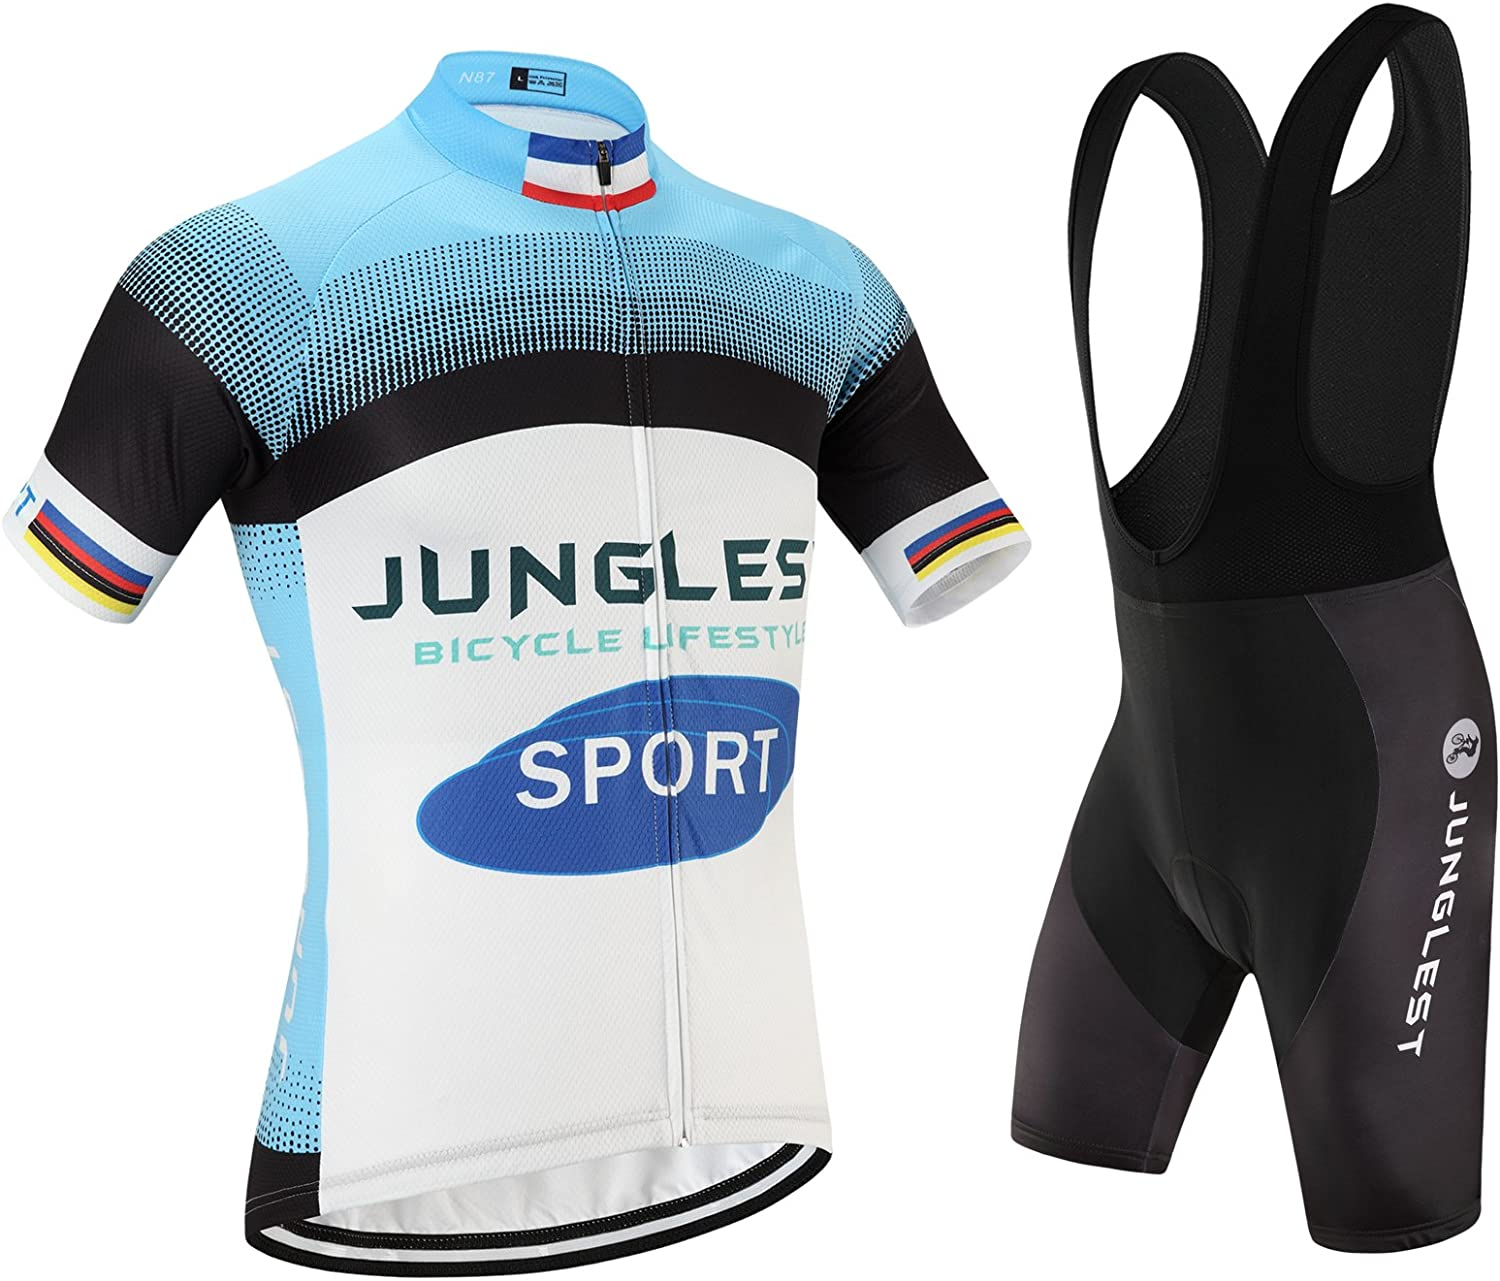 Cycling jersey Set, Maillot de Cyclisme Wen Homme Short sleeve Manches Courtes(S5XL,option bib Cuissard,3D pad Coussin) N87